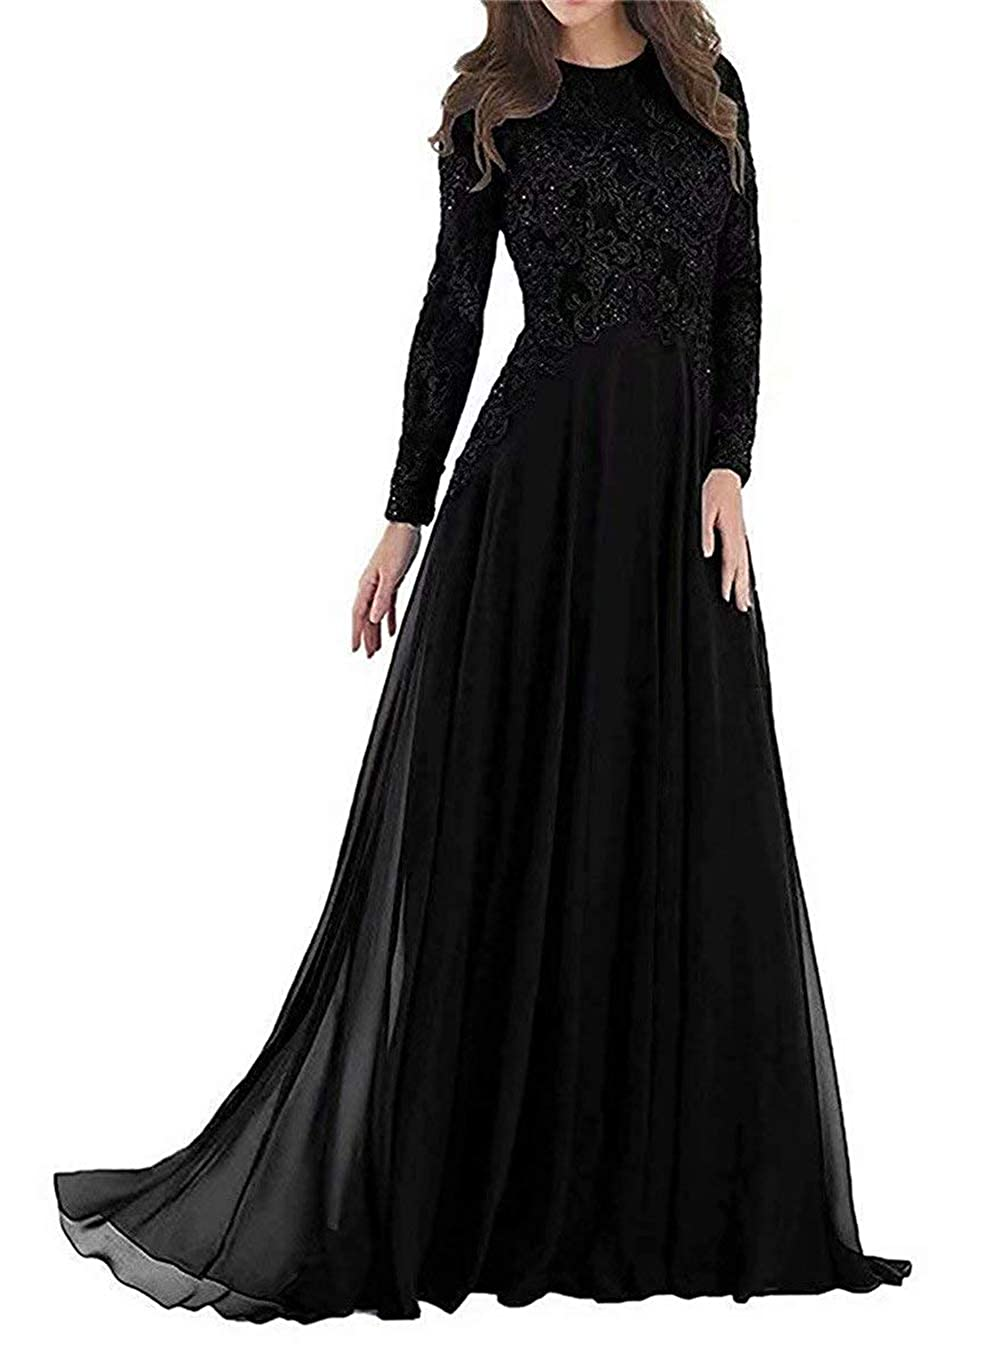 Black Pretygirl Women's Elegant Lace Mother of The Bride Dress Evening Dress Prom Gown for Wedding